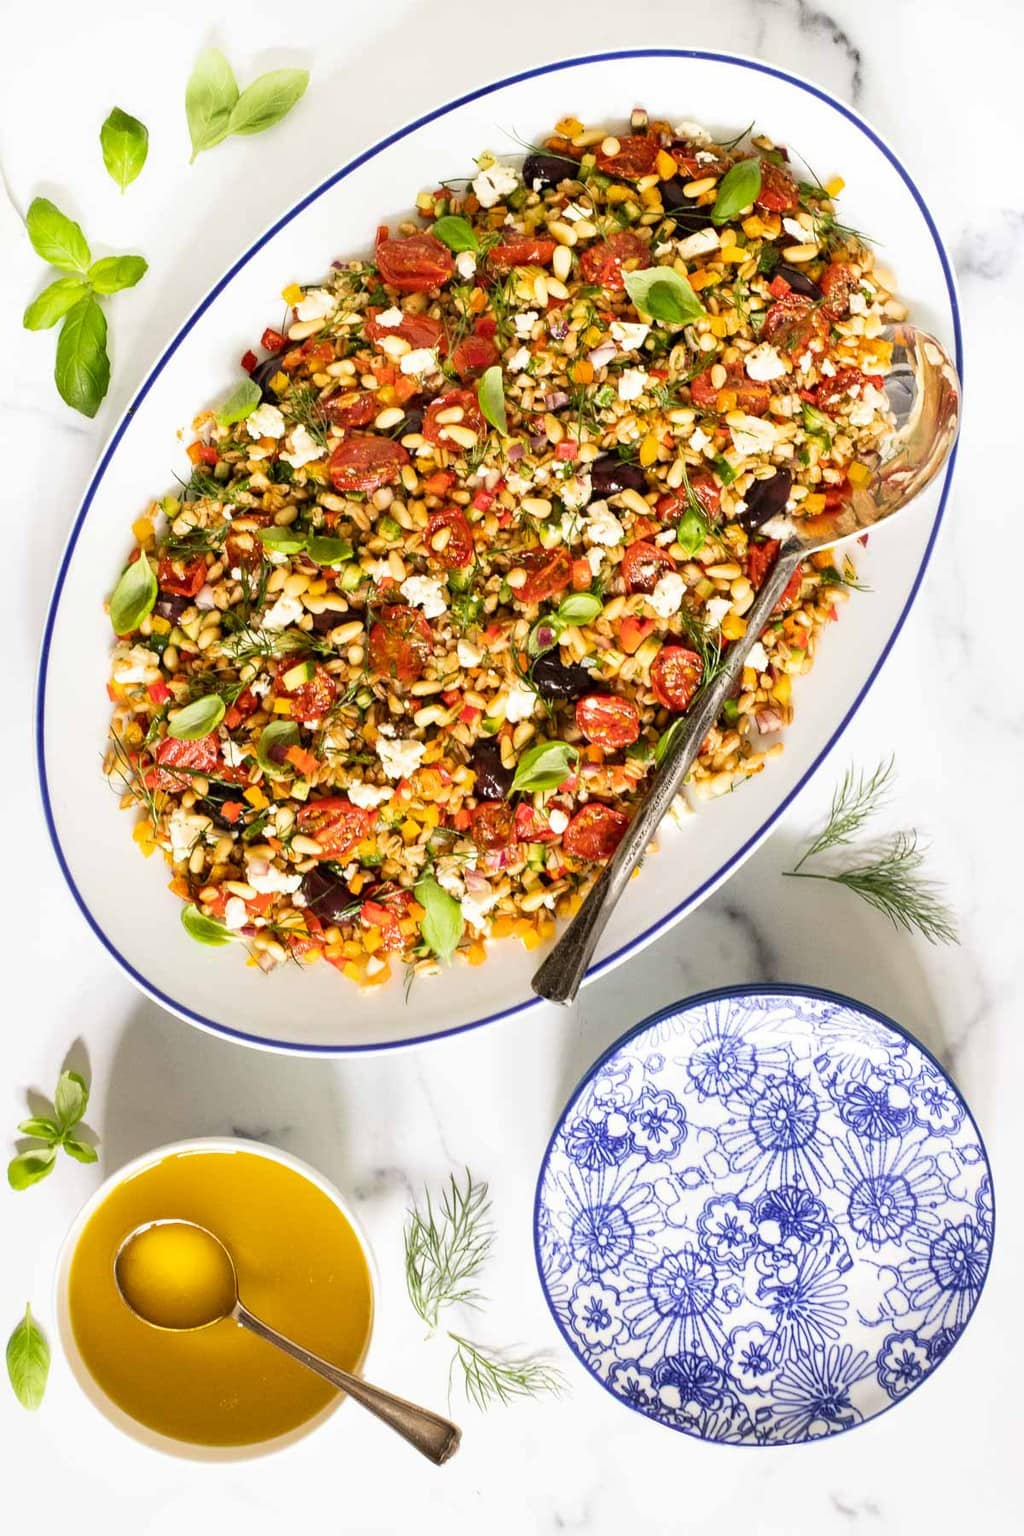 Vertical overhead photo of a Chopped Mediterranean Farro Salad in a white oval serving platter surrounded by basil and dill garnishes and a bowl of dressing.